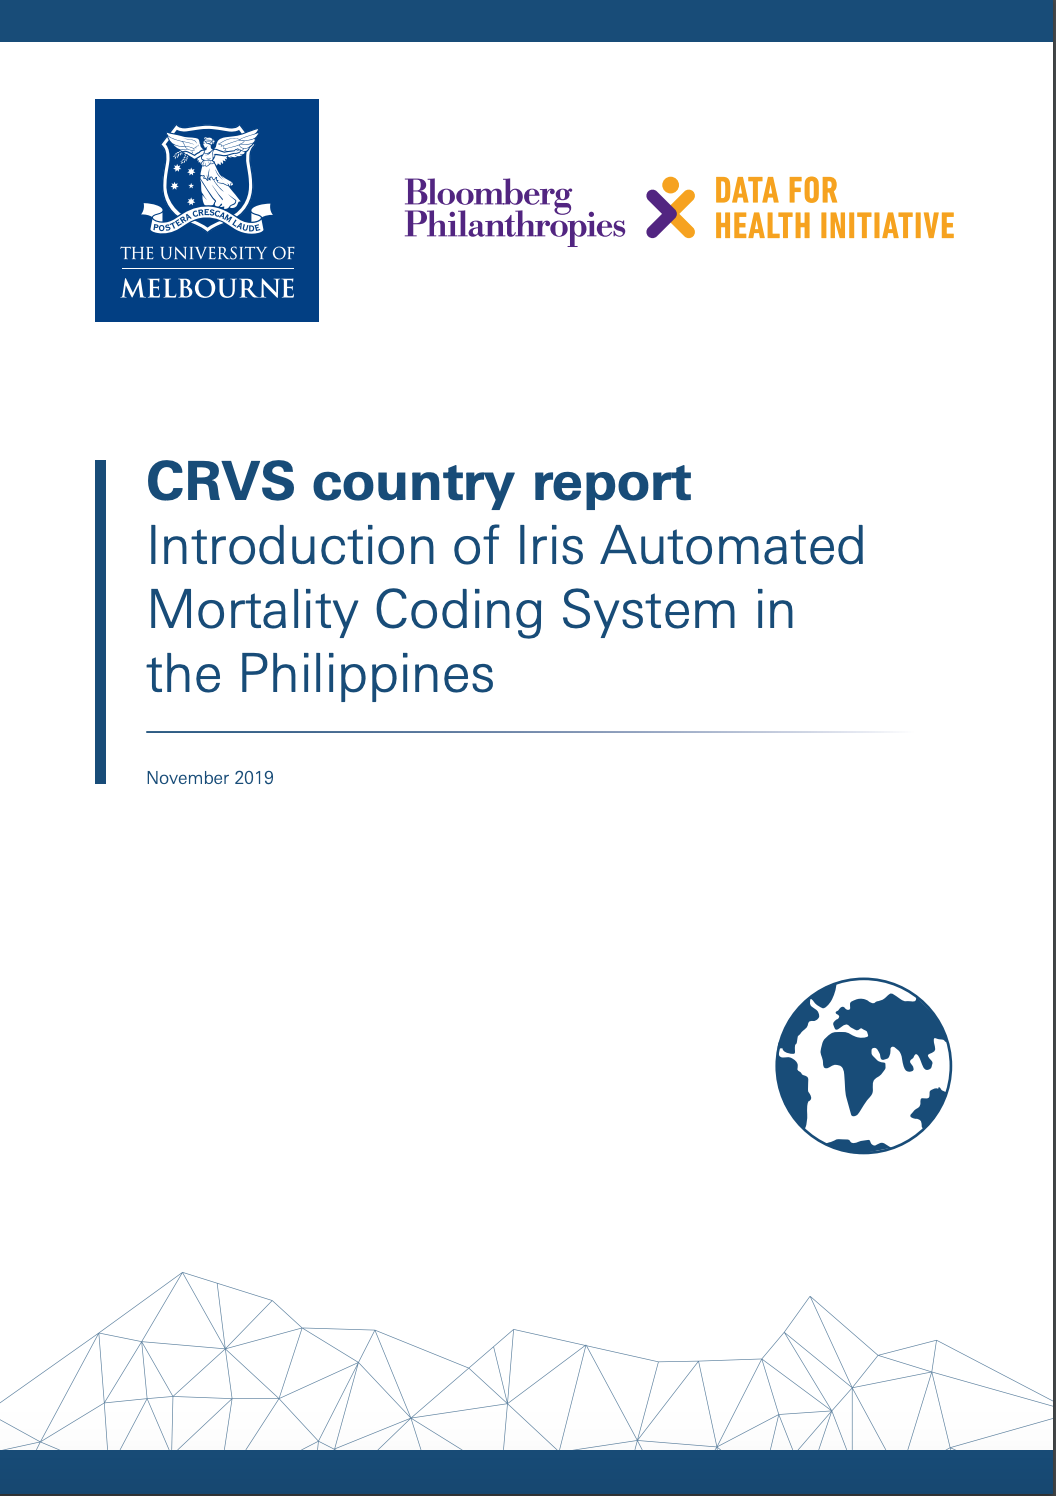 CRVS country report Introduction of Iris Automated Mortality Coding System in the Philippines thumbnail